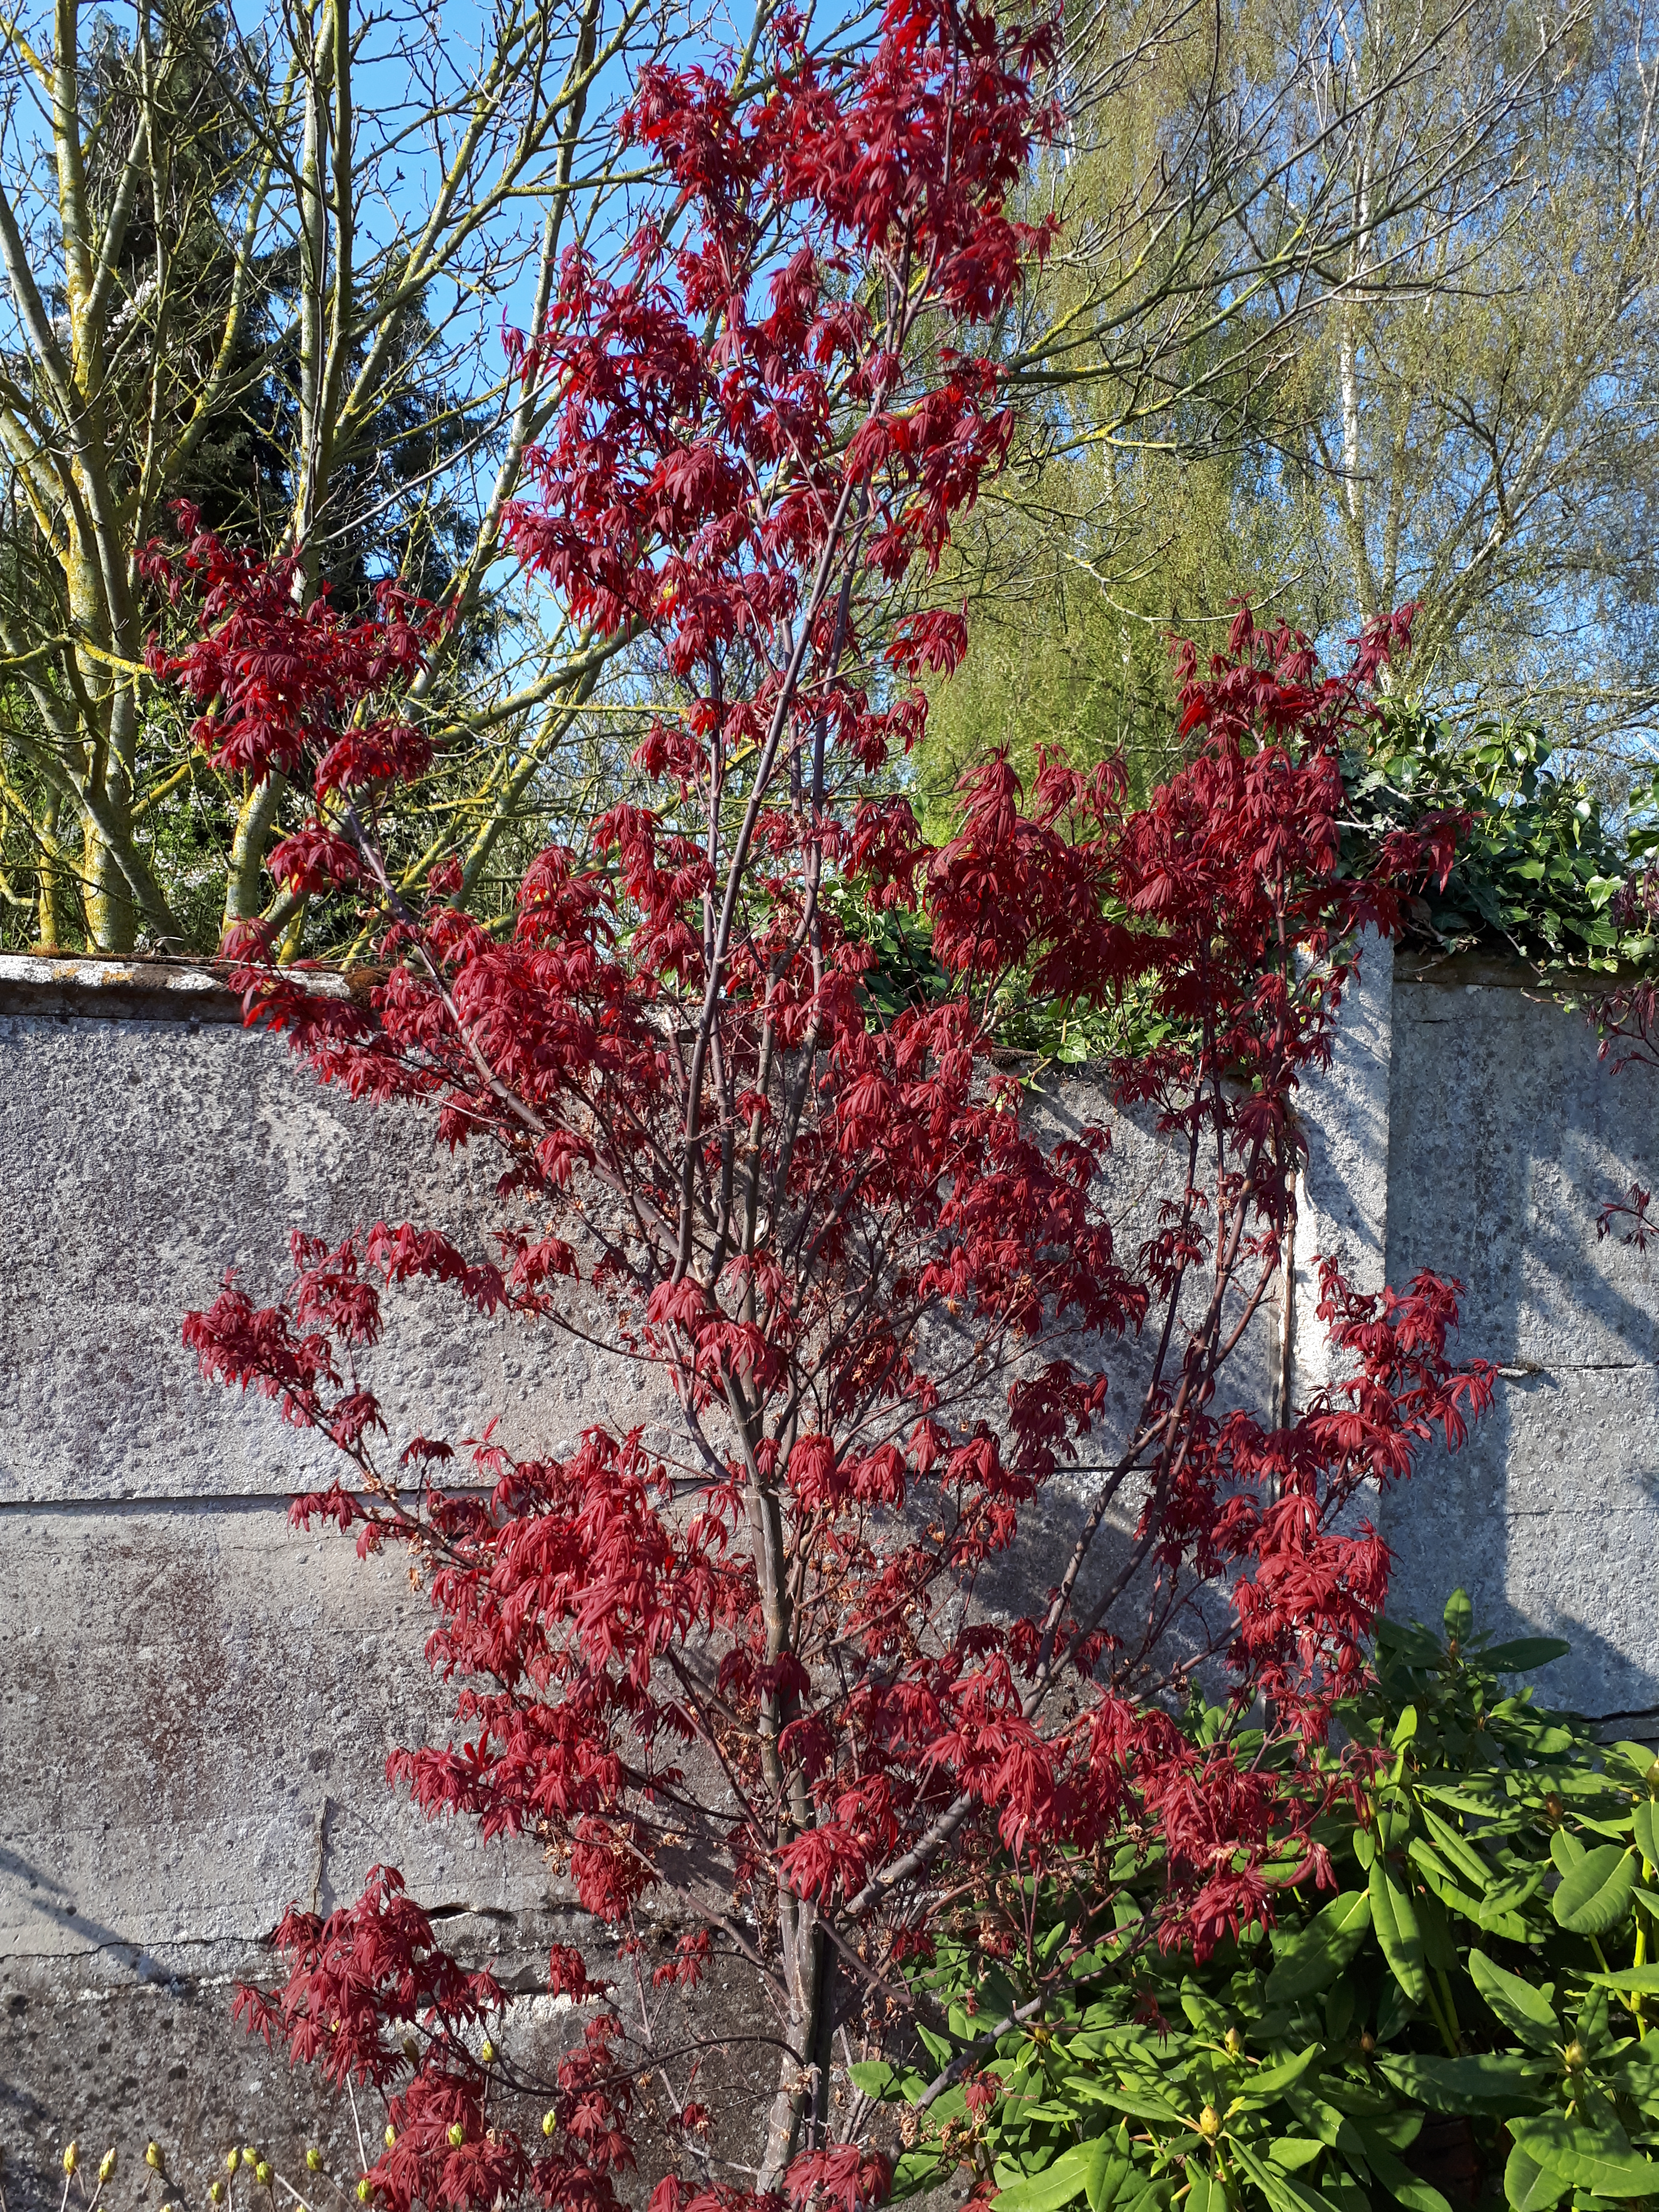 Acer Palmatum Skeeter Broom Page 7 Au Jardin Forum De Jardinage